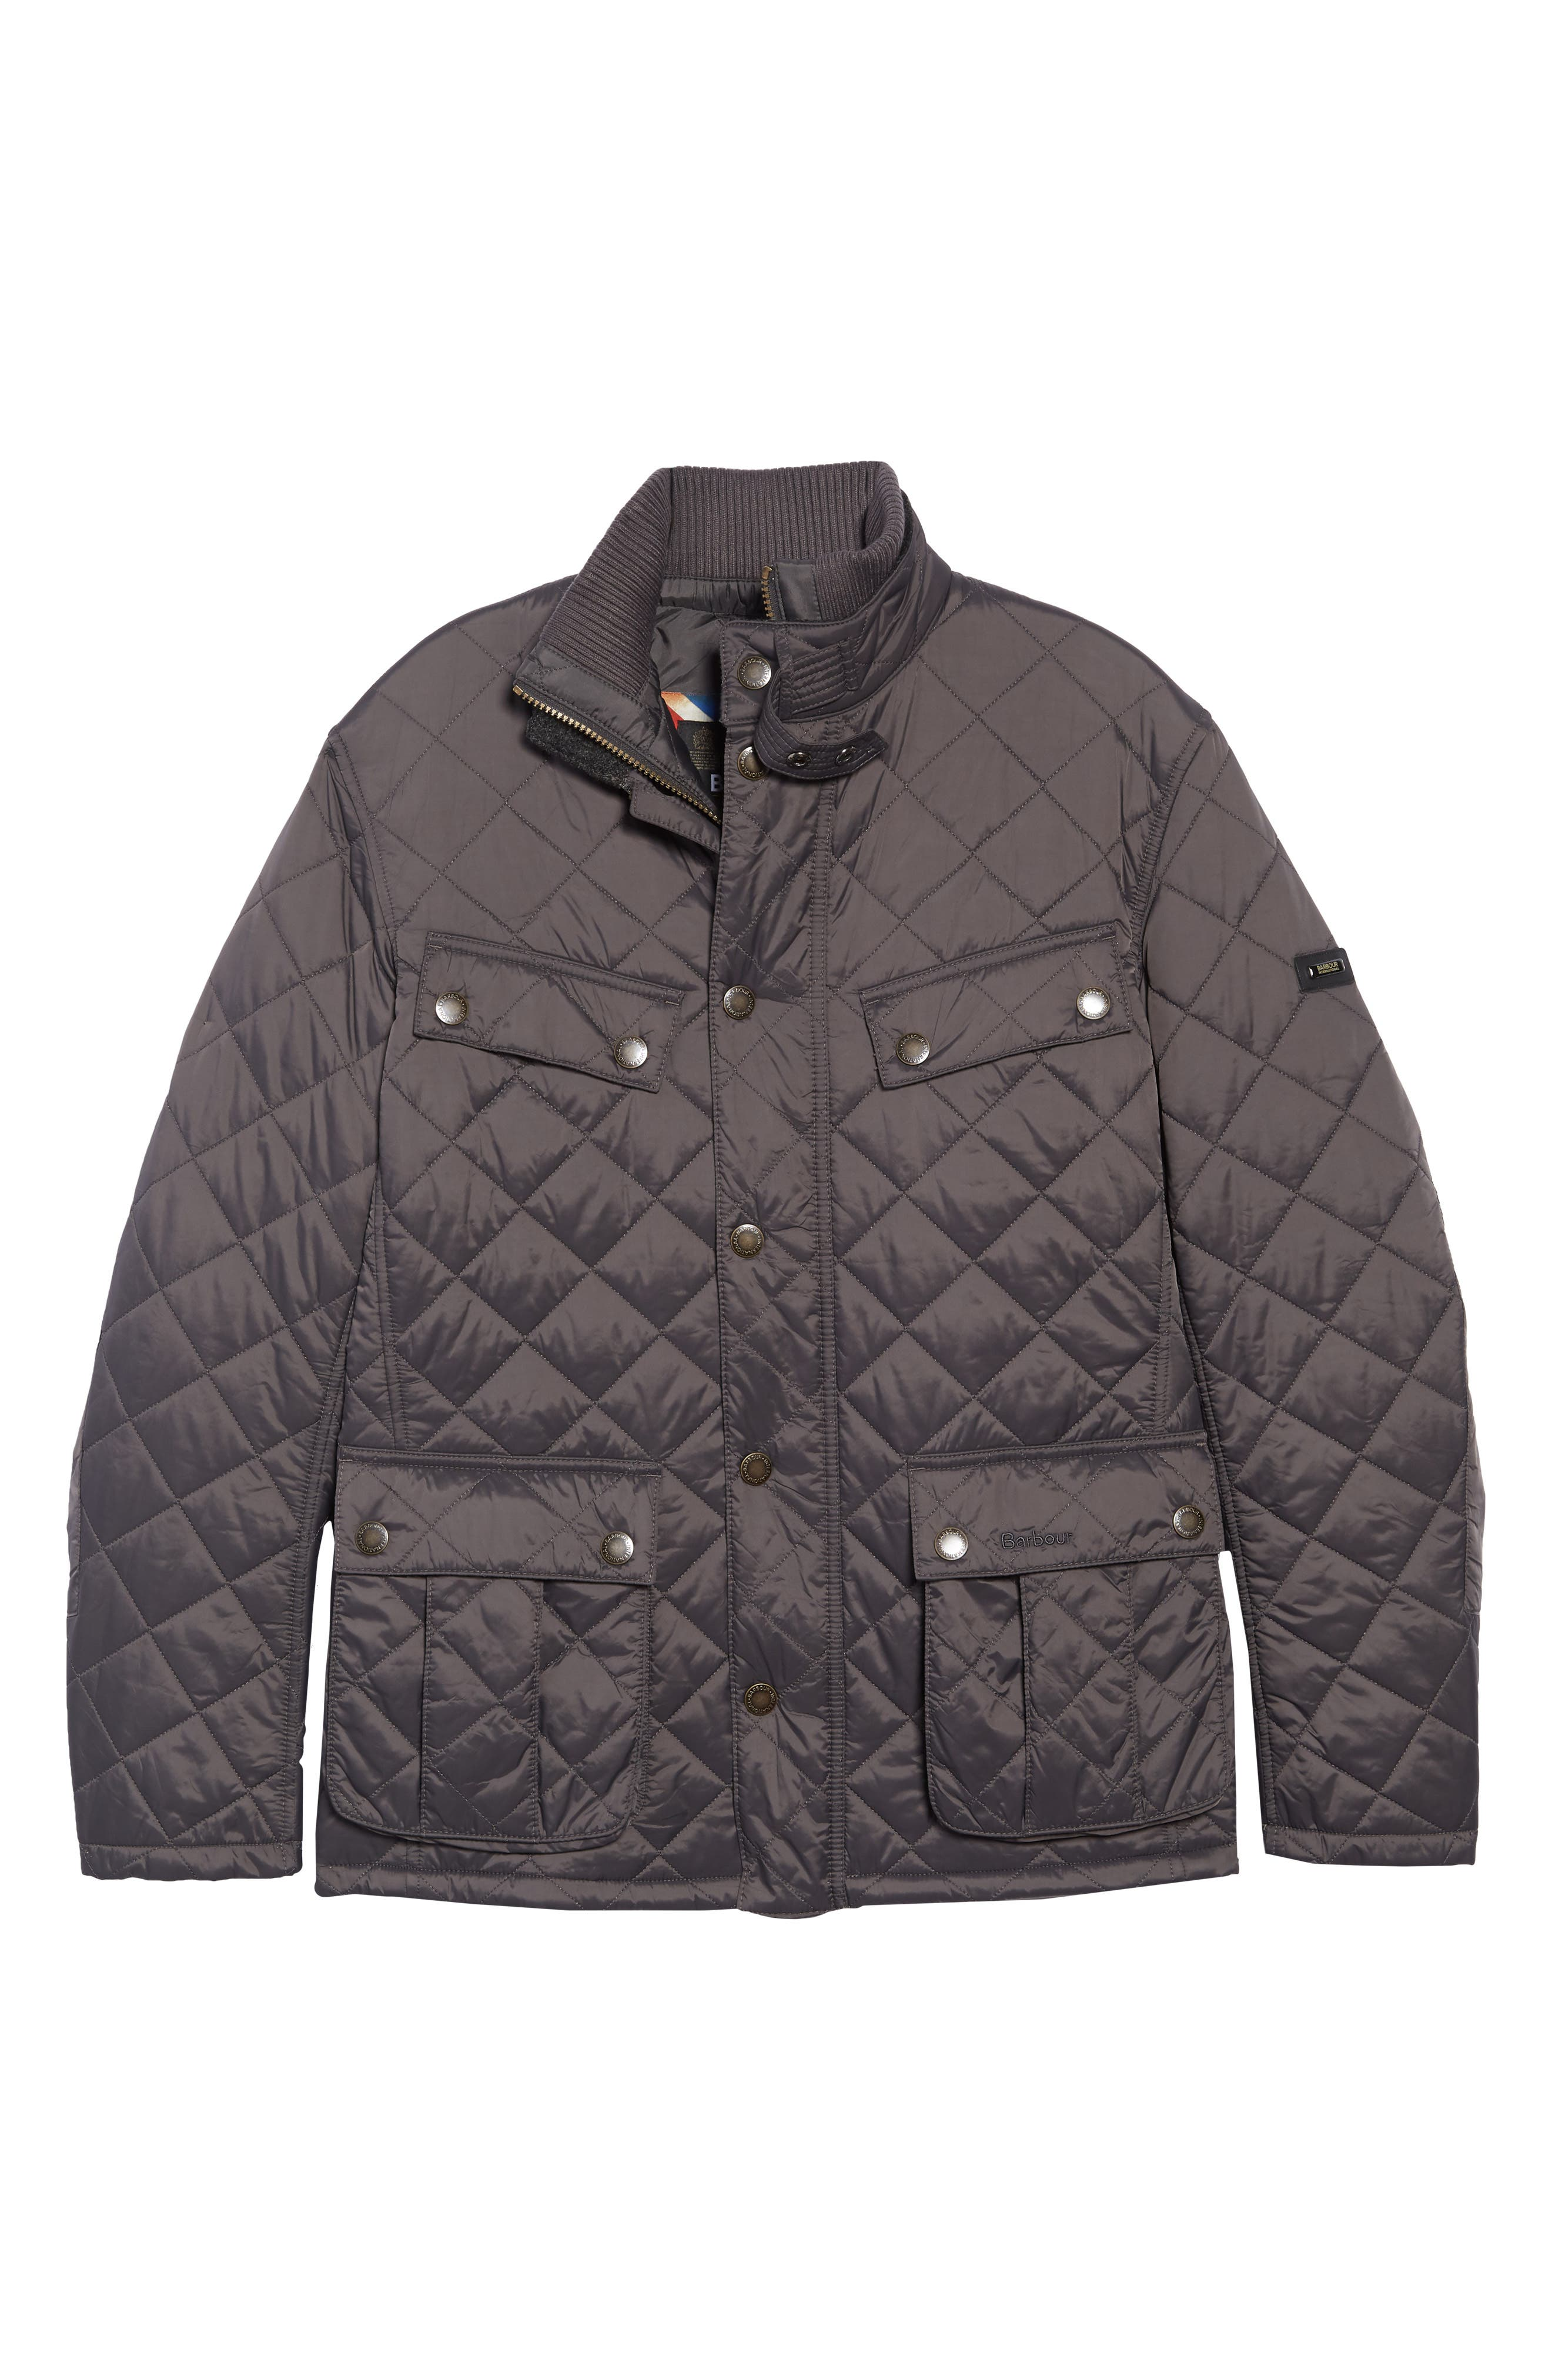 BARBOUR, International Windshield Quilted Jacket, Alternate thumbnail 6, color, CHARCOAL